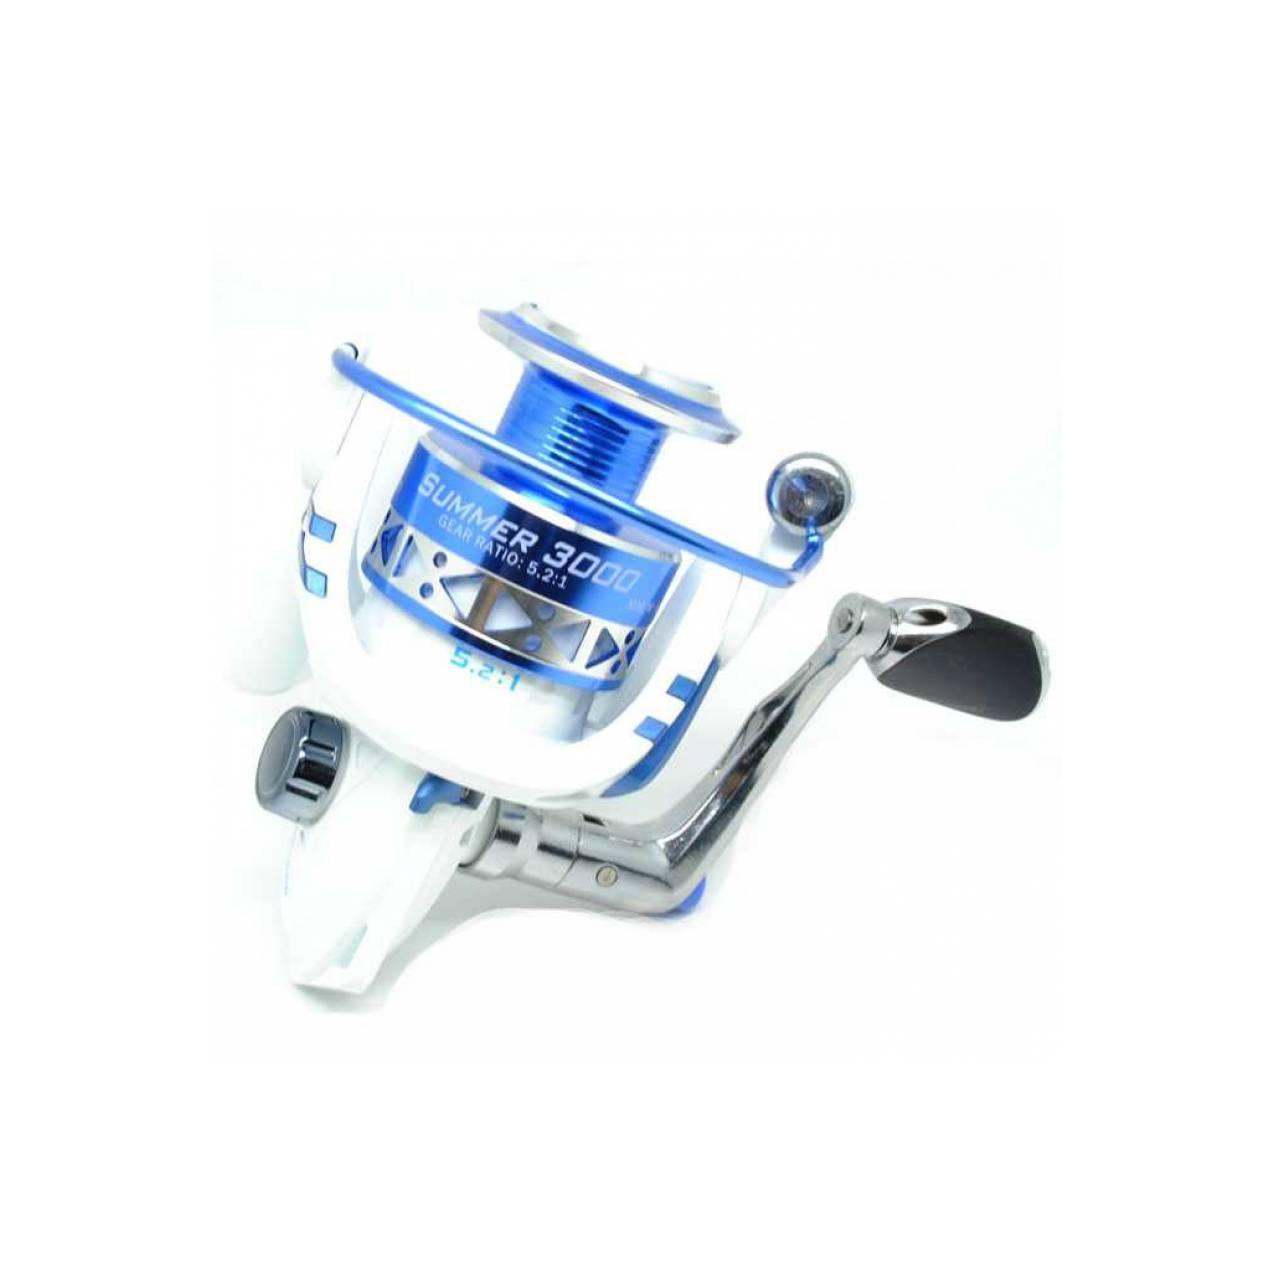 KastKing Reel Pancing Summer3000 9 Ball Bearing Terlaris Bagus Awet